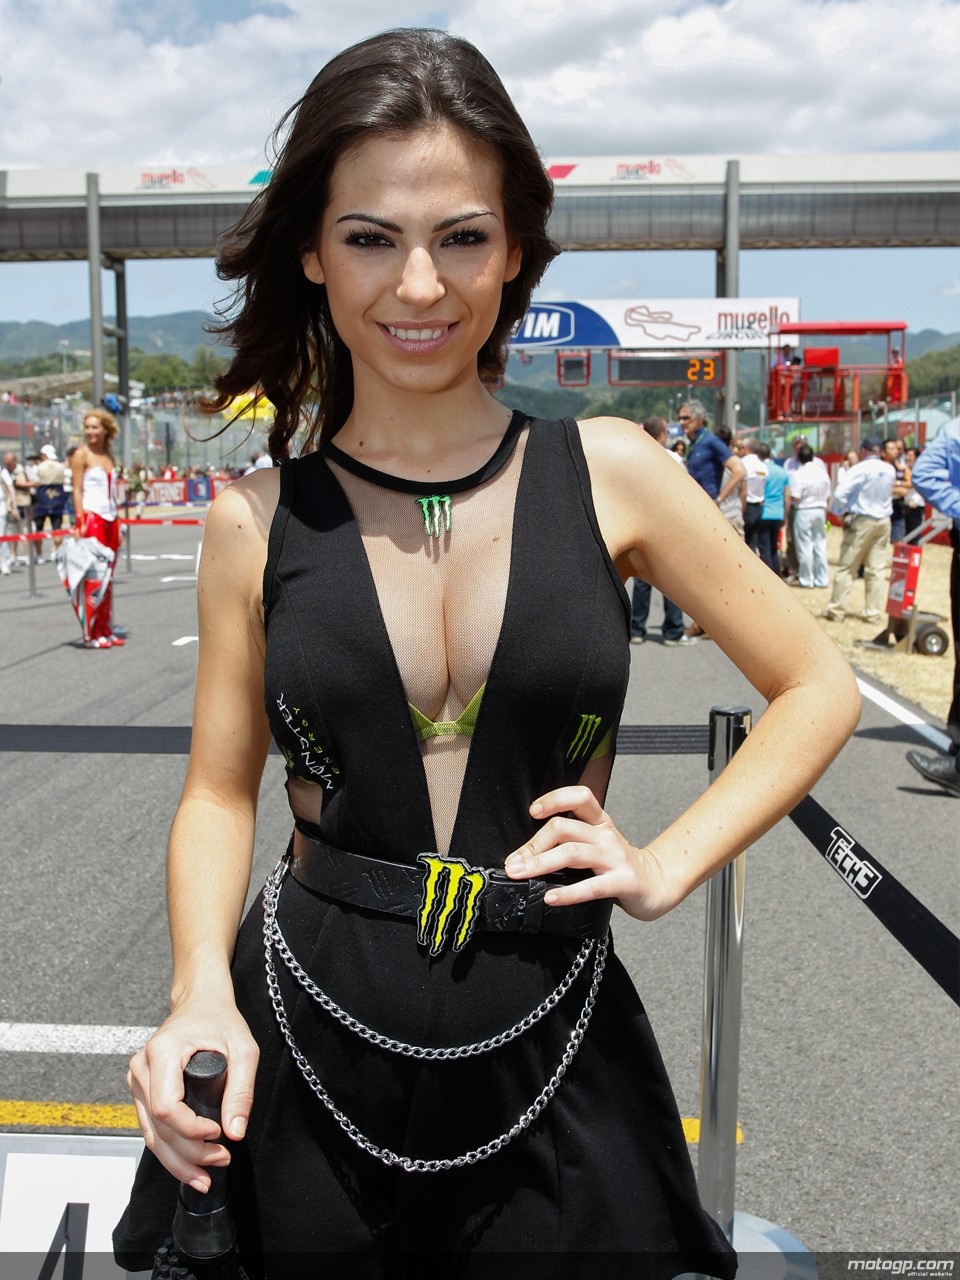 Photos des paddock girls